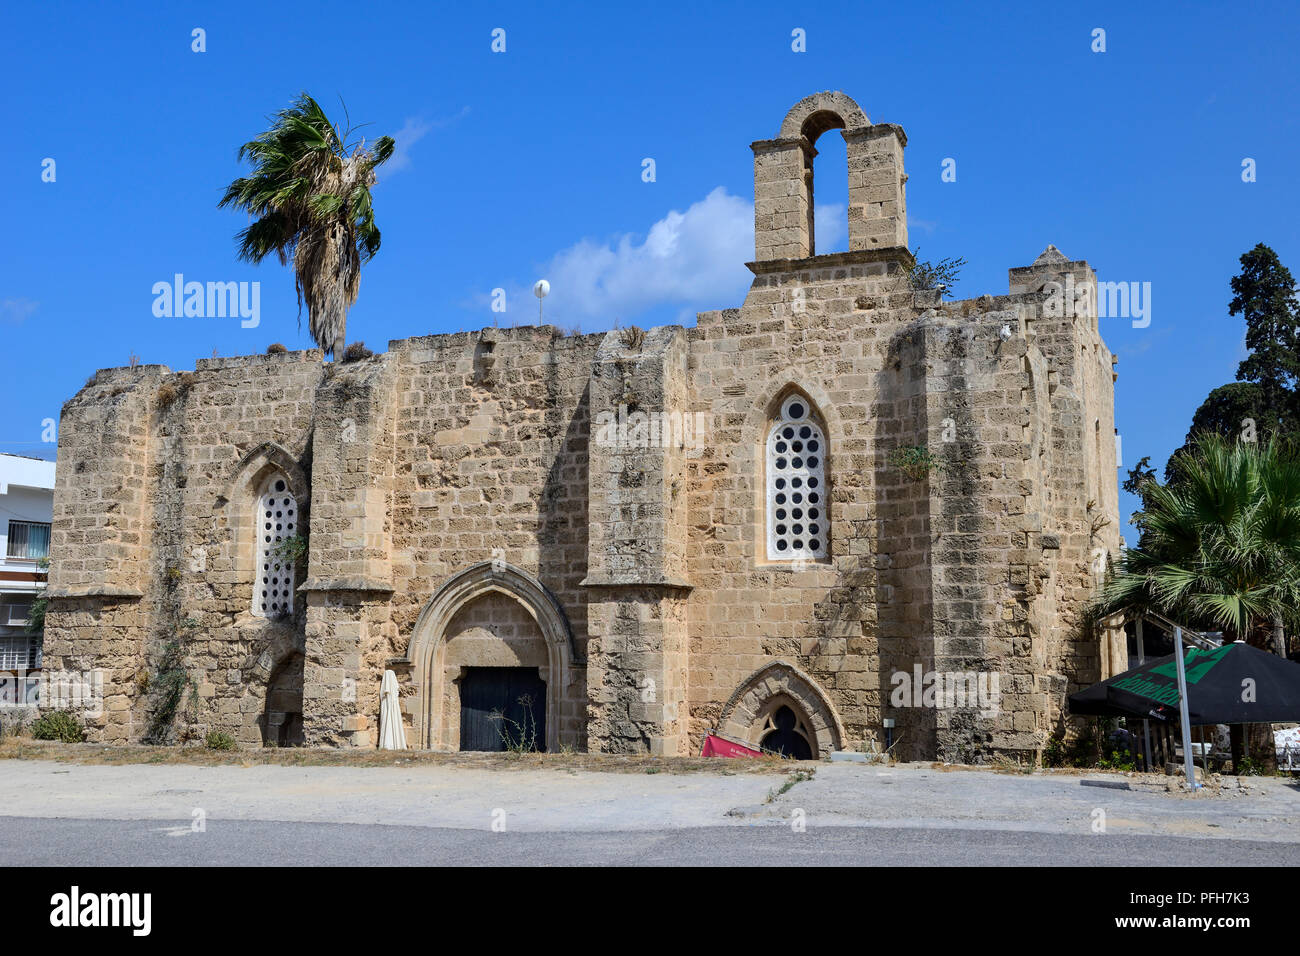 Twin churches of the Knights Templar and Knights Hospitalier in the old city of Famagusta (Gazimagusa) in the Turkish Republic of Northern Cyprus - Stock Image